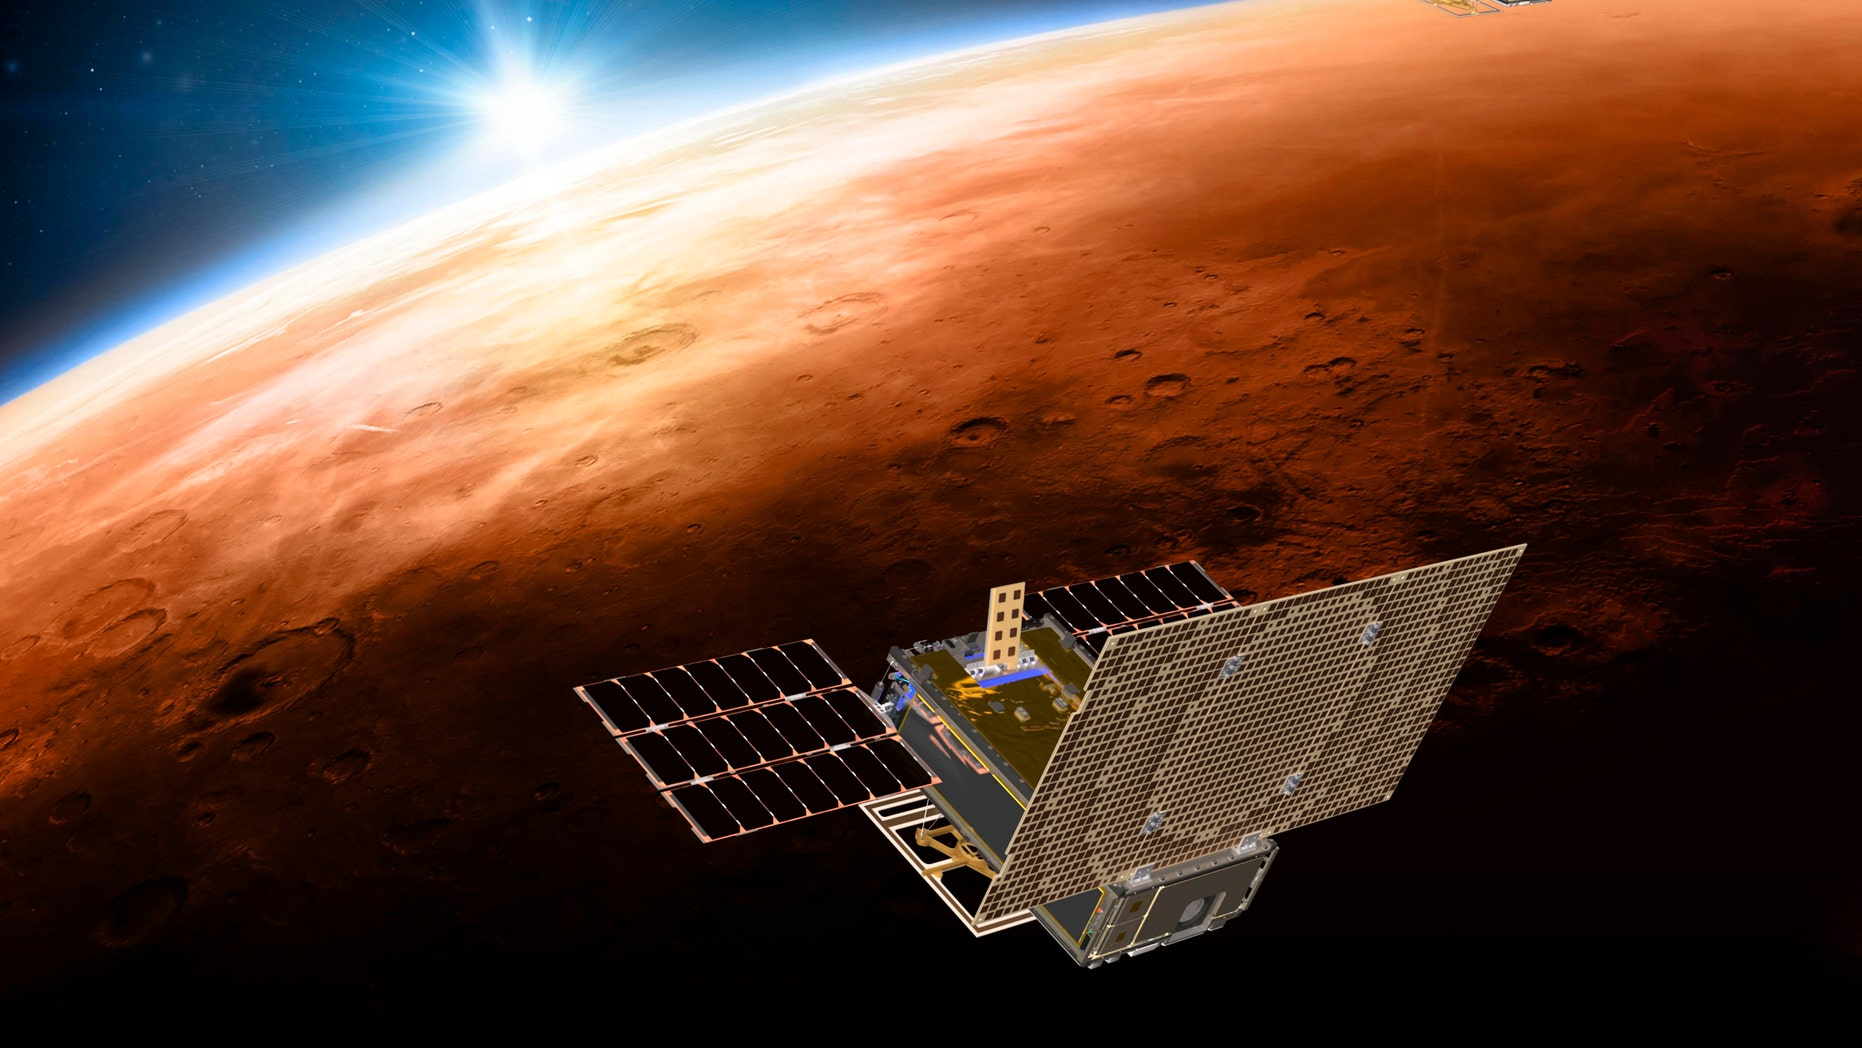 FILE - This illustration made available by NASA in March 2018 shows the twin Mars Cube One project (MarCO) spacecrafts flying over Mars with Earth and the sun in the distance. (NASA/JPL-Caltech via AP)